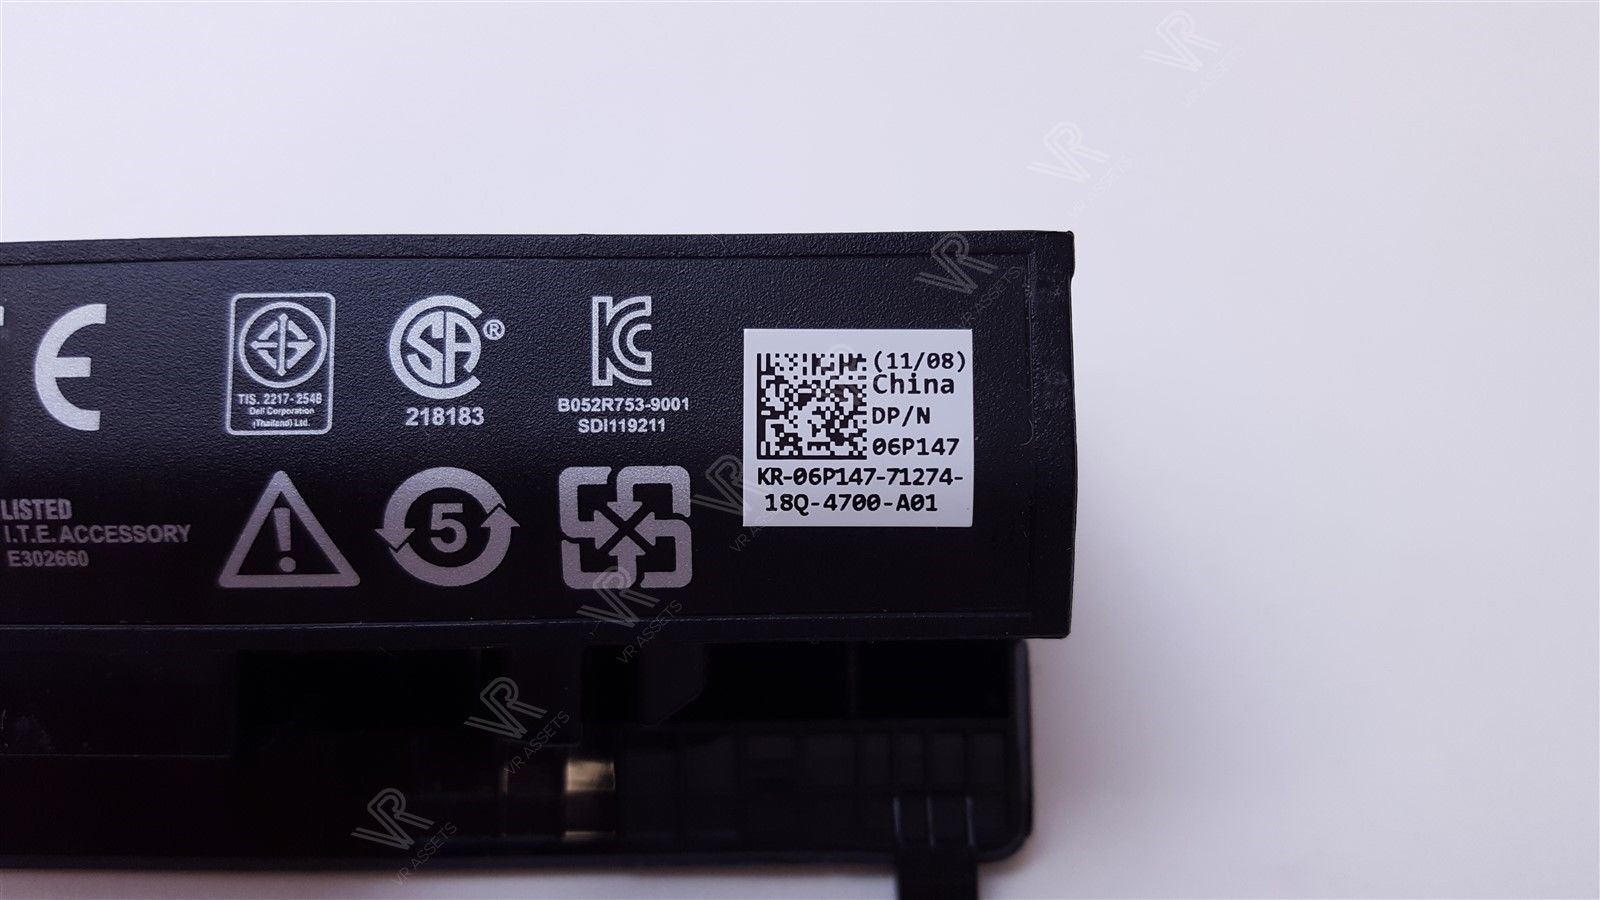 Dell Latitude 2100 2110 2120 56Wh 11.1V 3 Cell Laptop Battery 6P147 06P147 G038N